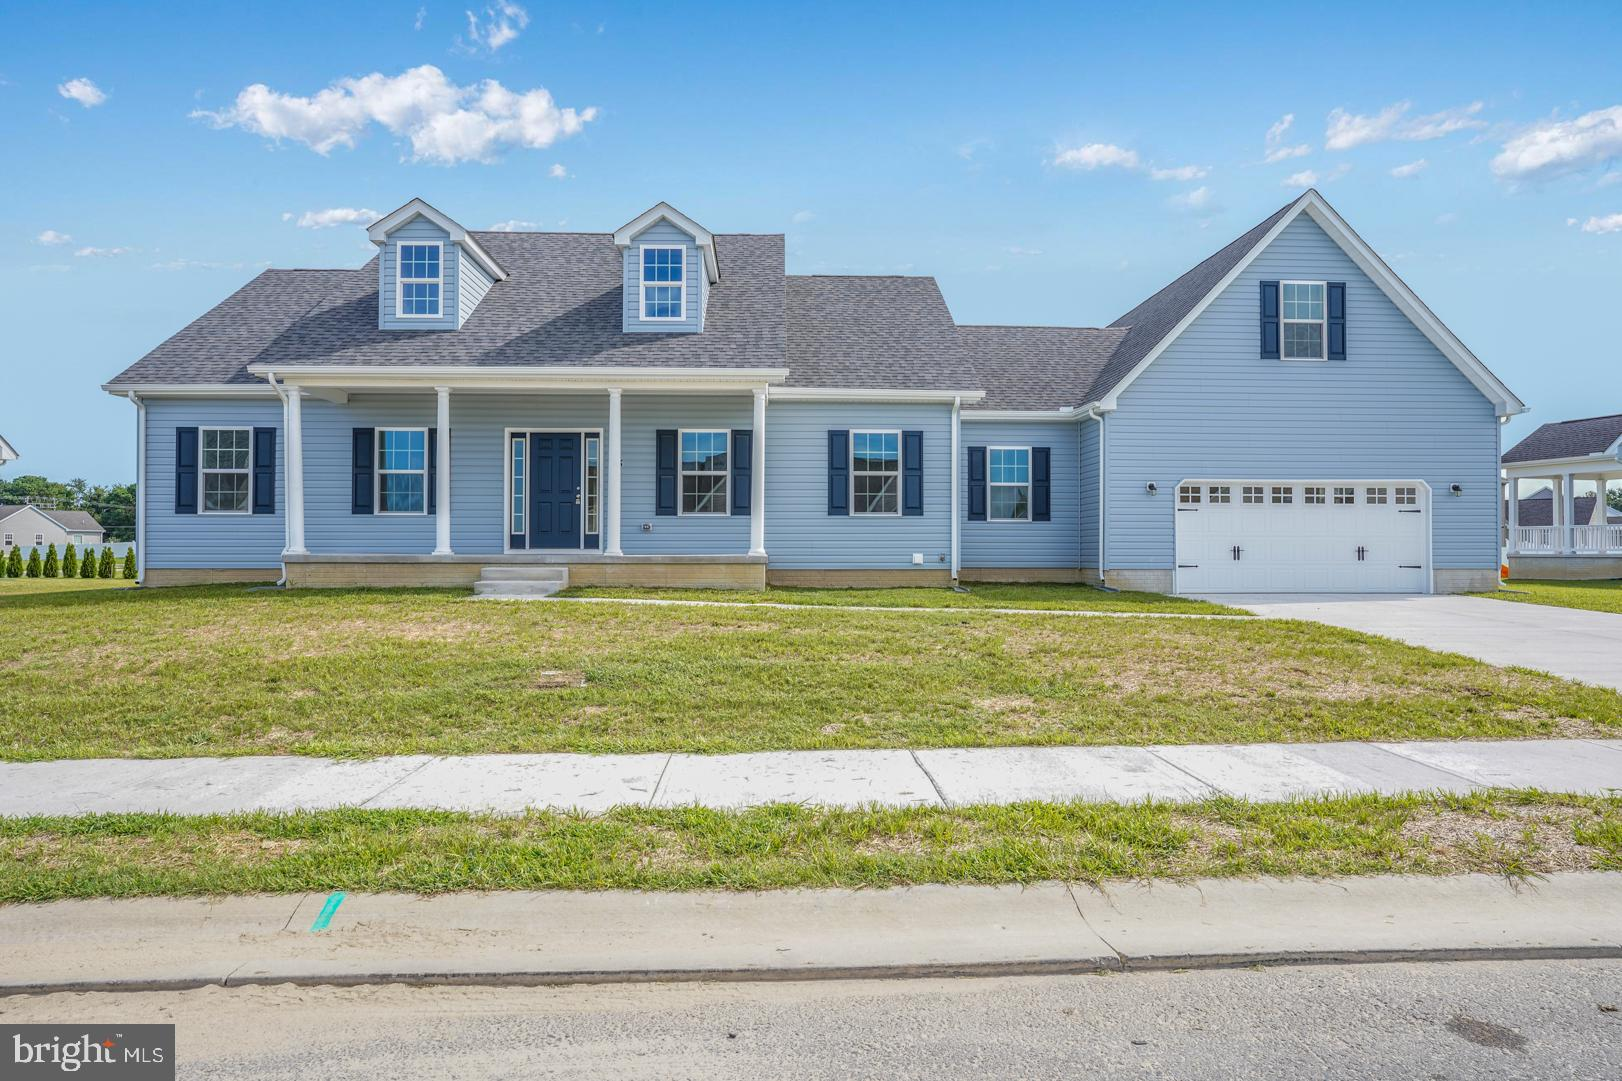 Get our LOVELY Jonesboro model on your list! This is our largest rancher model with 3 oversized bedrooms, 2 full baths and a large upstaris finished bonus room above the garage. Would make a great 4th bedroom, office or second living room.  These pictures are of a similar Jonesboro model, no the exact one. The current one being built will be a light gray color with black shutters.  The kitchen will be the exact same as pictured. The current Jonesboro being built is estimated for completion in December 2021. The Kitchen offers granite countertops, upgraded cabinets with soft close doors, crown molding and stainless steel appliances. Around the corner from the kitchen is a large walk in pantry with tons of storage! Beind the pantry, back the hall is the main level laundry room. Off the hall is a large master suite with walk in closet, and over sixed three peice master bath hosting a soaking tub, showerstall and double sinks. The Jonesboro model has a sepertate formal dining room space and an oversized welcoming family room off the kitchen. On the left side of the house are the two spare bedrooms with closet space and full bath.  The Basement on this house is the same size foot print of the house, tons of storage space! Contact the listing agent for more details and come check out the lovely community of Weatherstone Crossing.